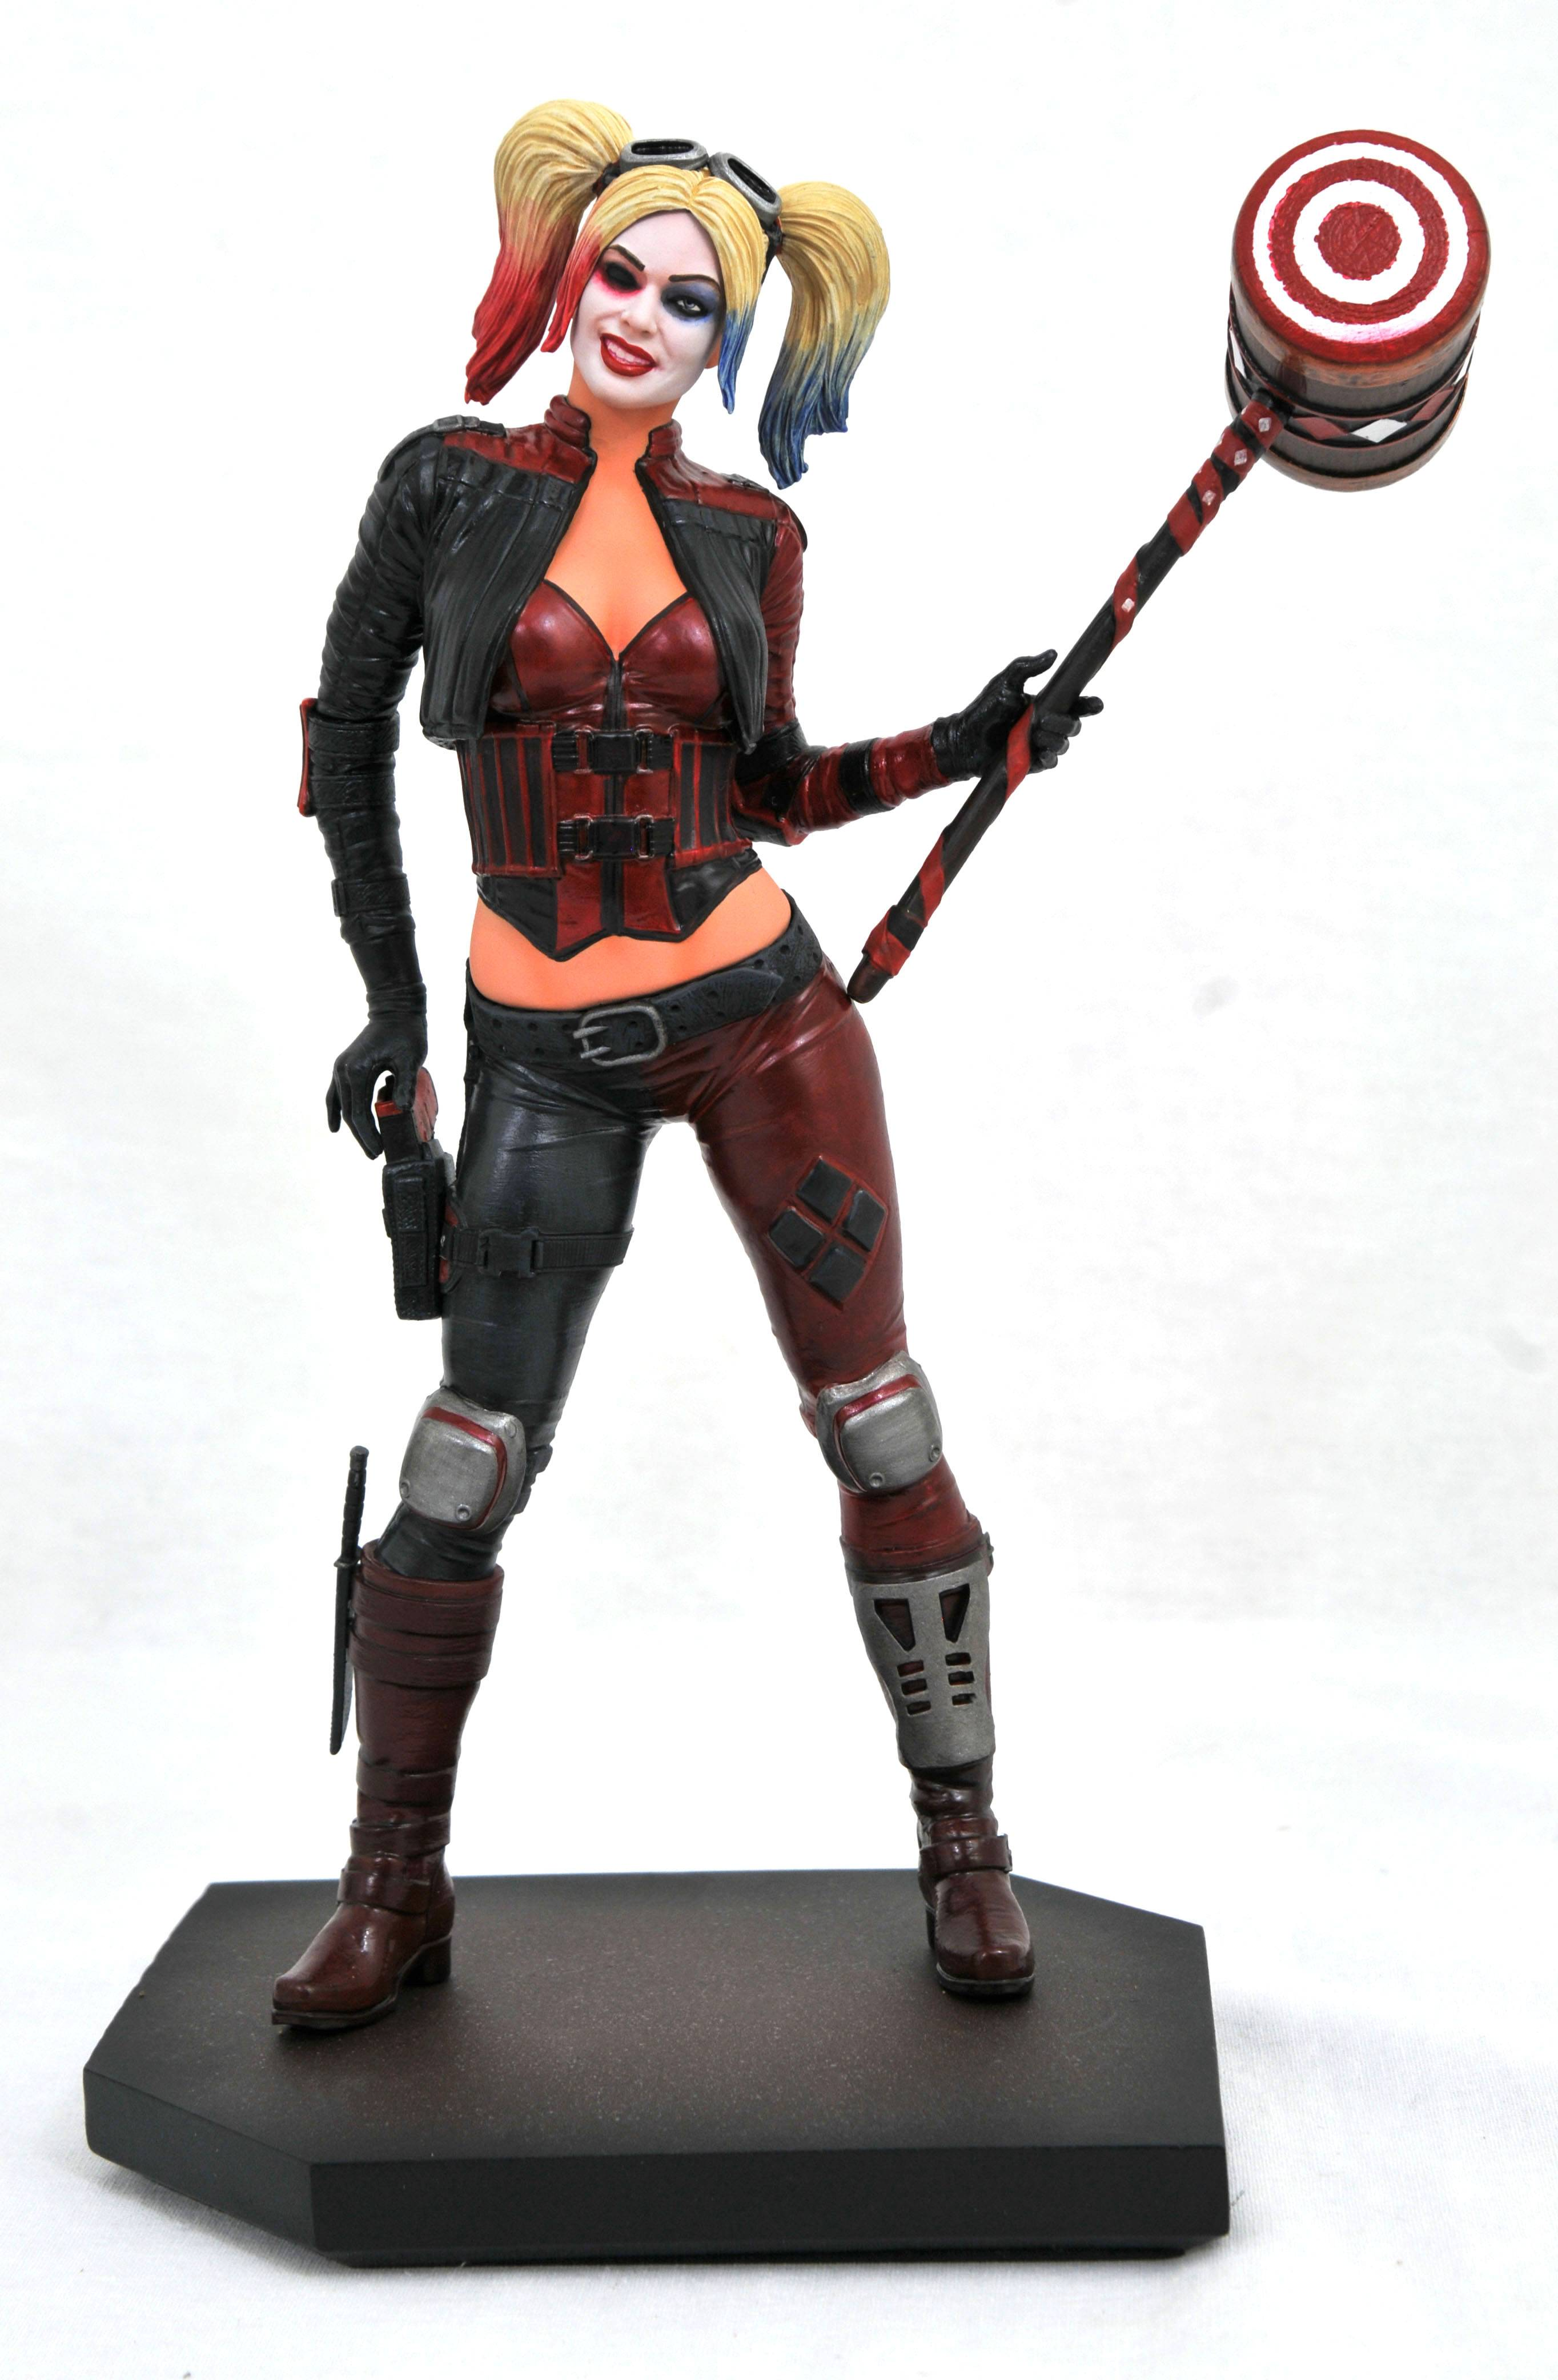 DC Gallery: Injustice 2 Harley Quinn PVC Figure